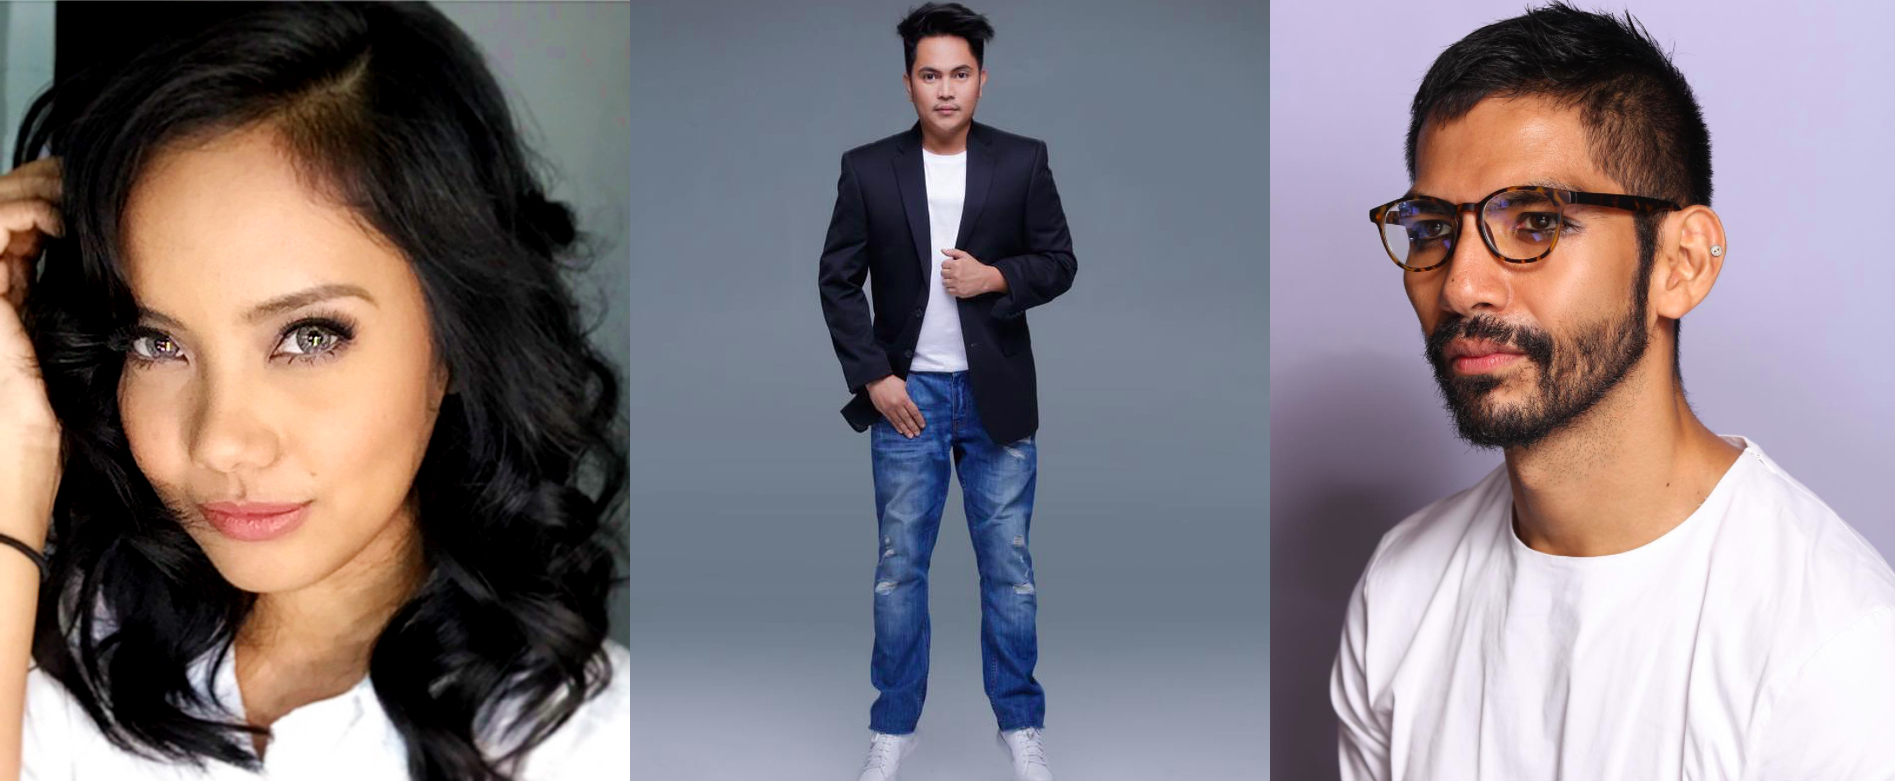 Makeup masters: Anthea Bueno, Owen Sarmiento, and Jigs Mayuga